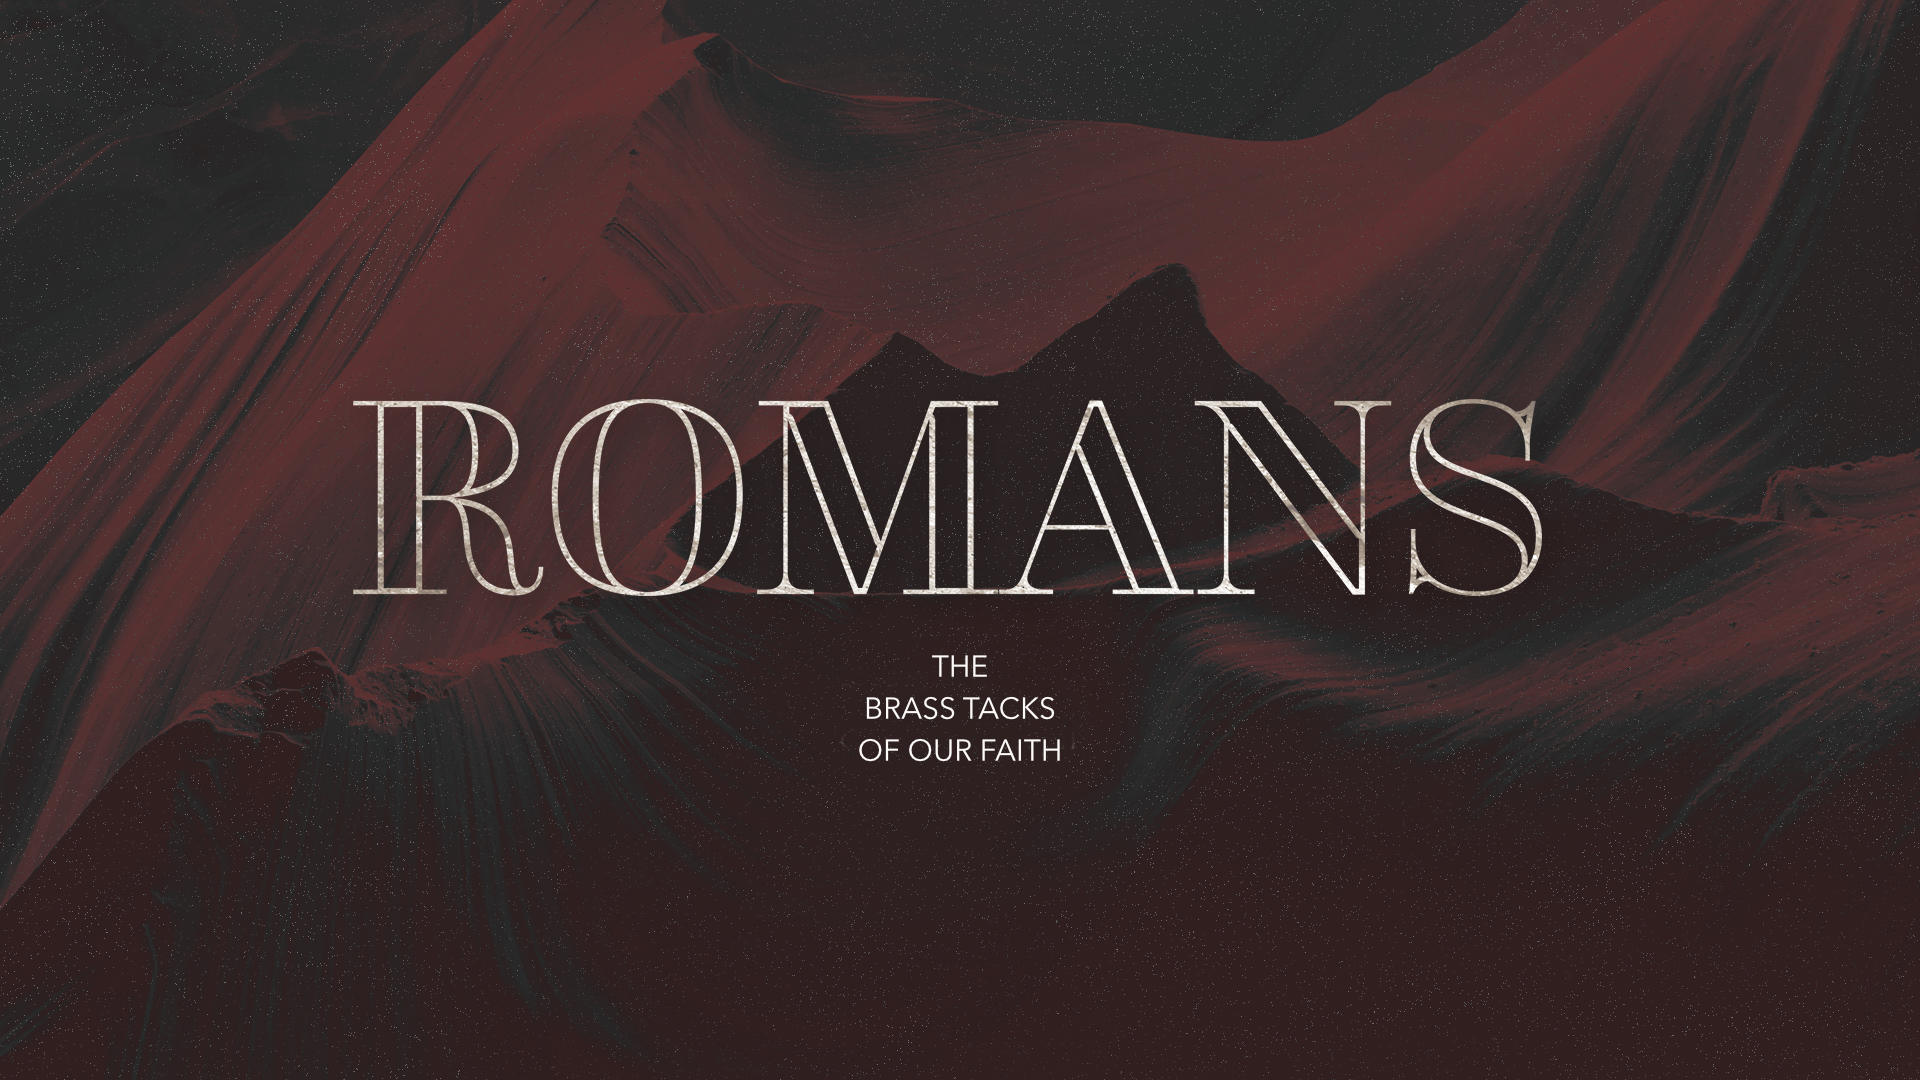 Romans: The Brass Tacks of Our Faith - Who Are You Wearing?